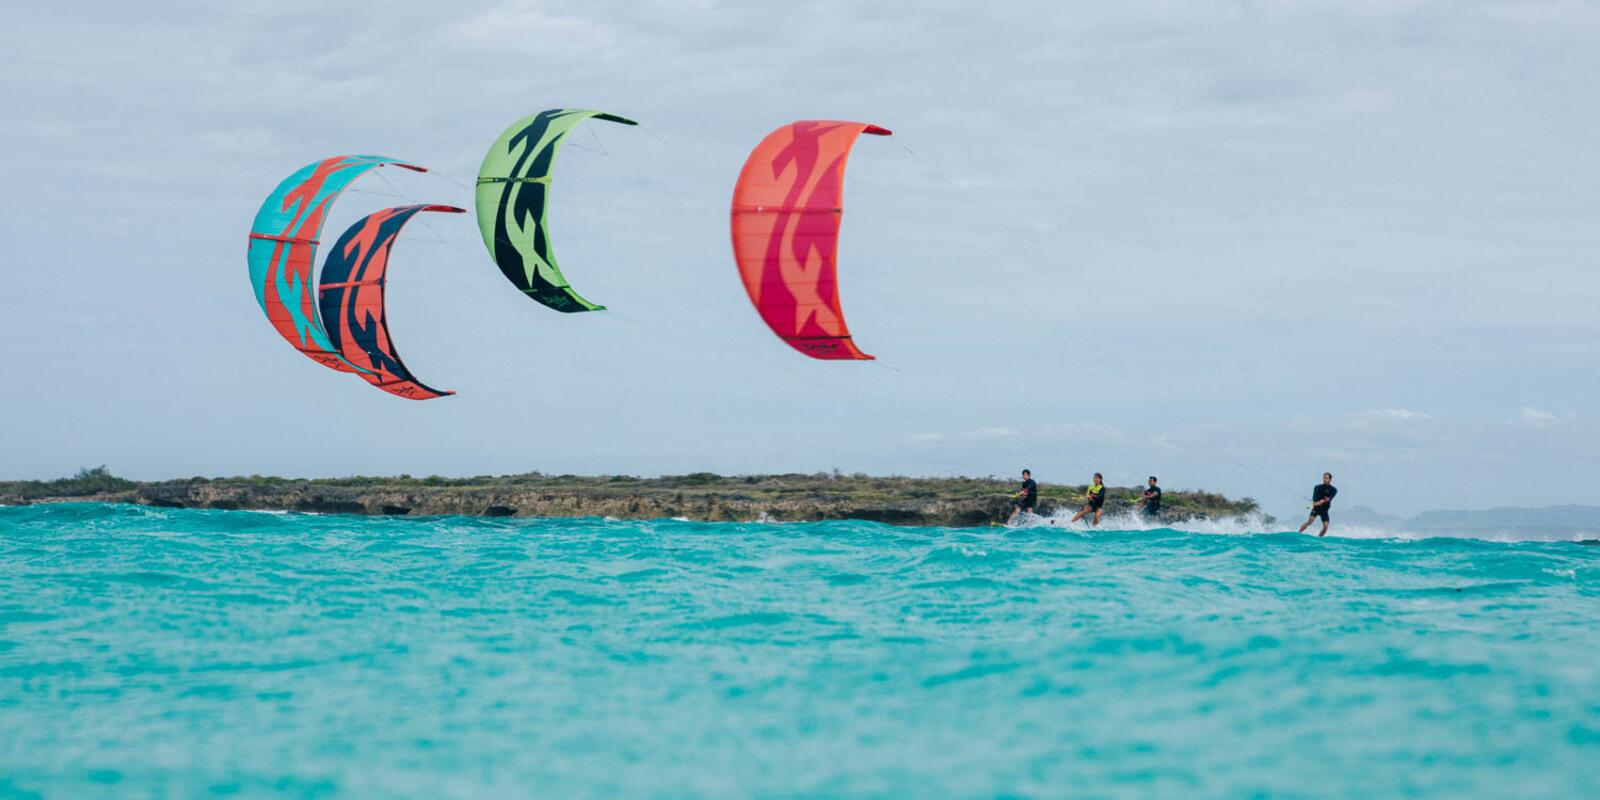 10 days of kitesurf and adventure in the Grenadines